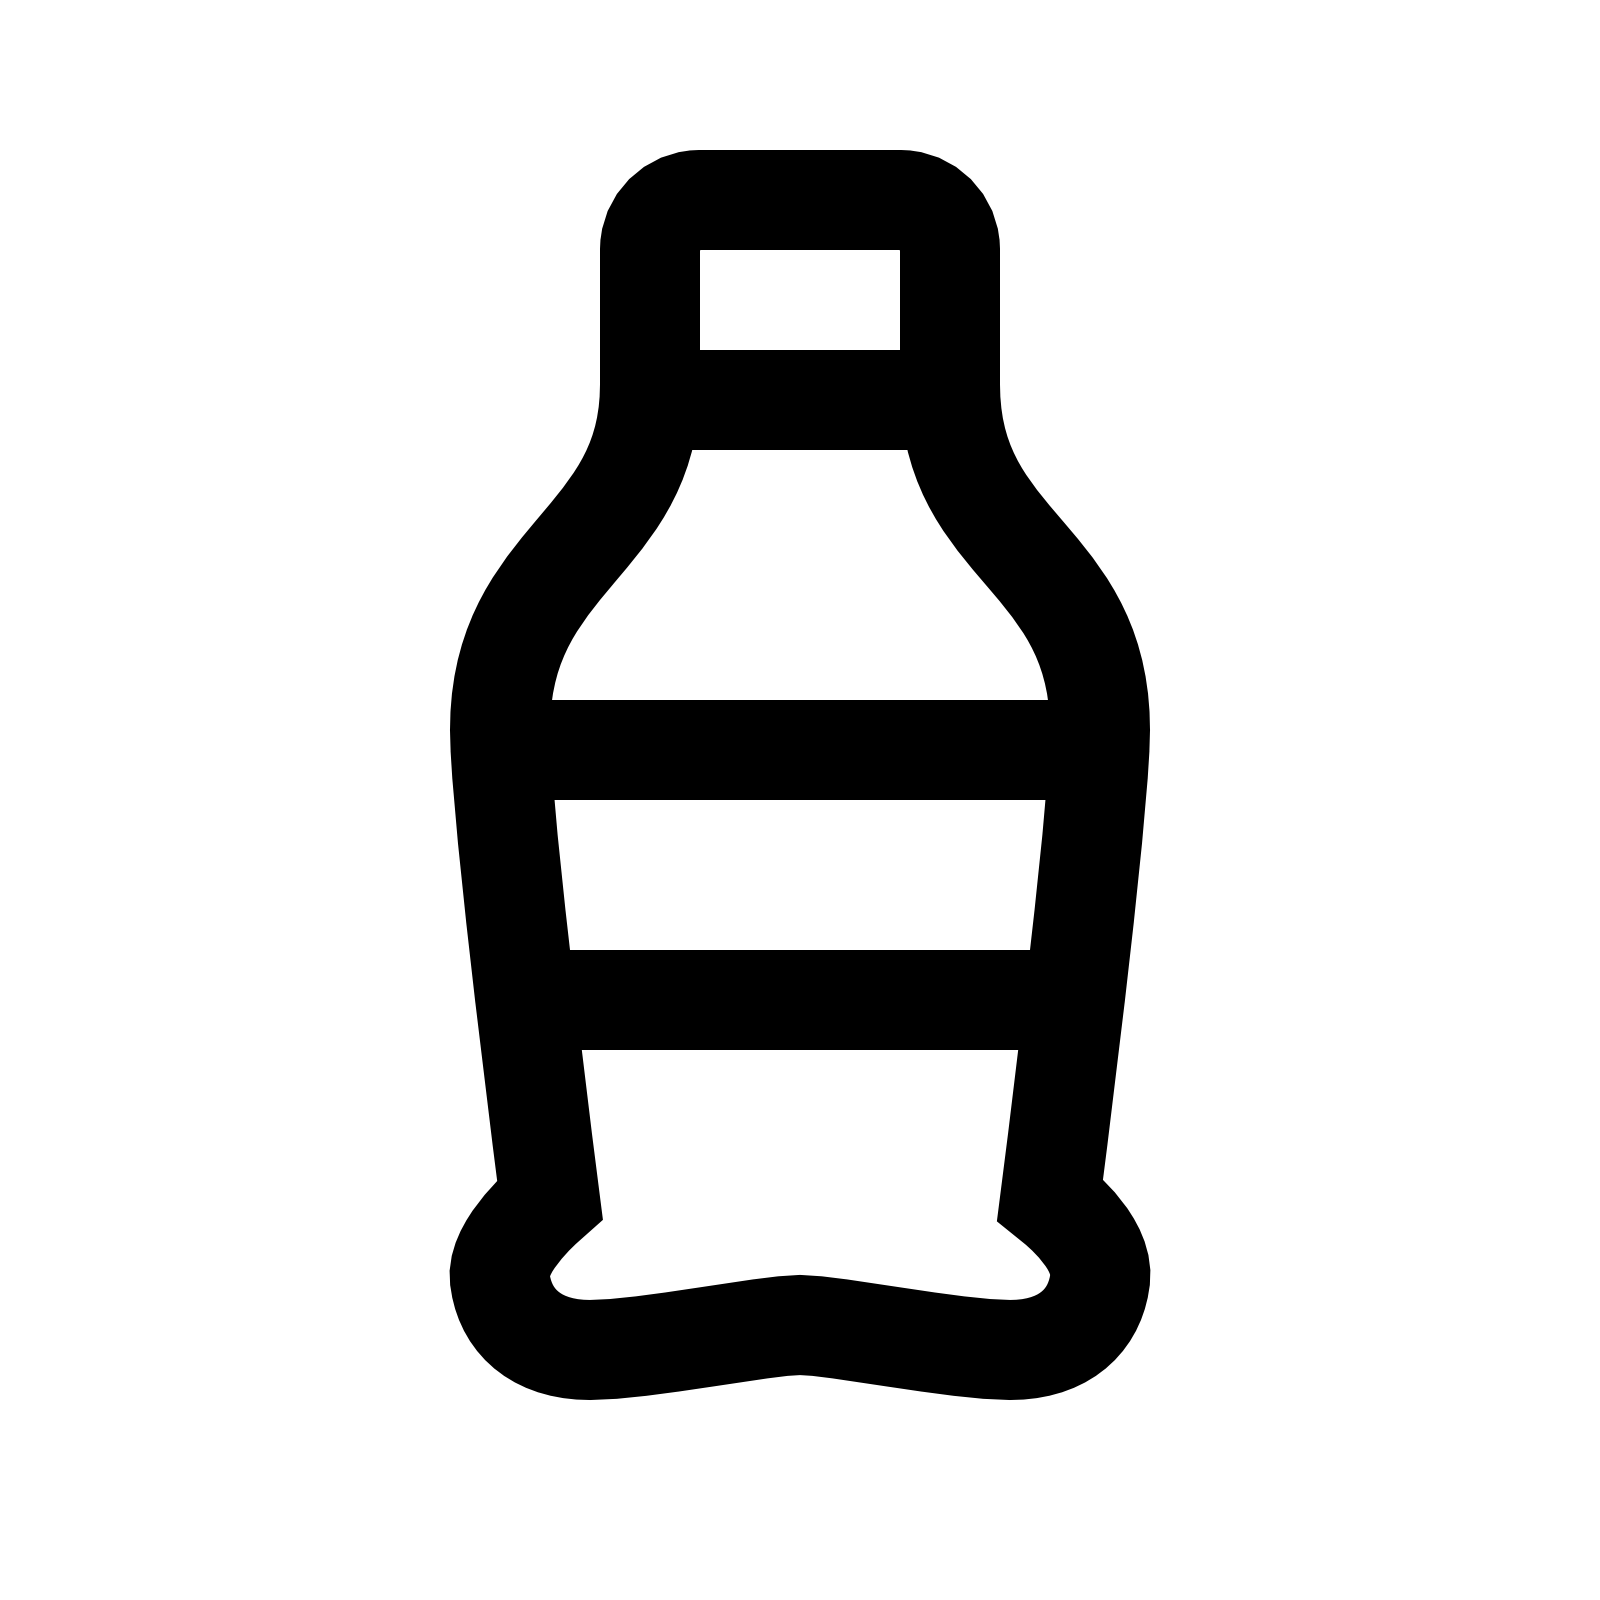 jpg free stock Soda clipart black and white.  pictures of bottle